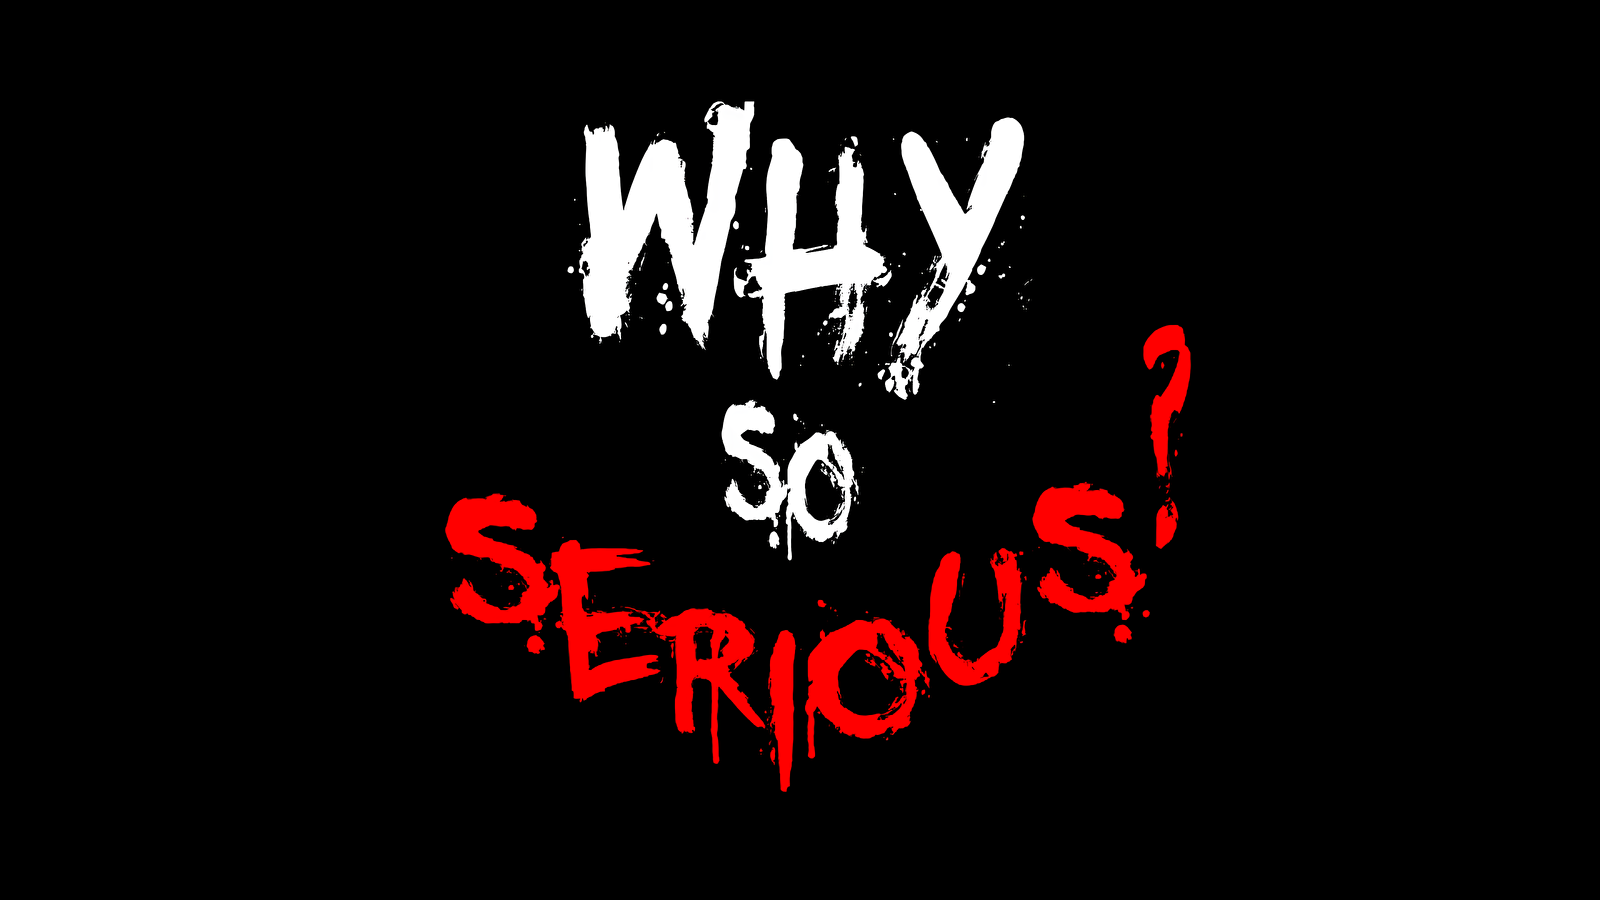 Why so serious? [3840x2160] : wallpaper